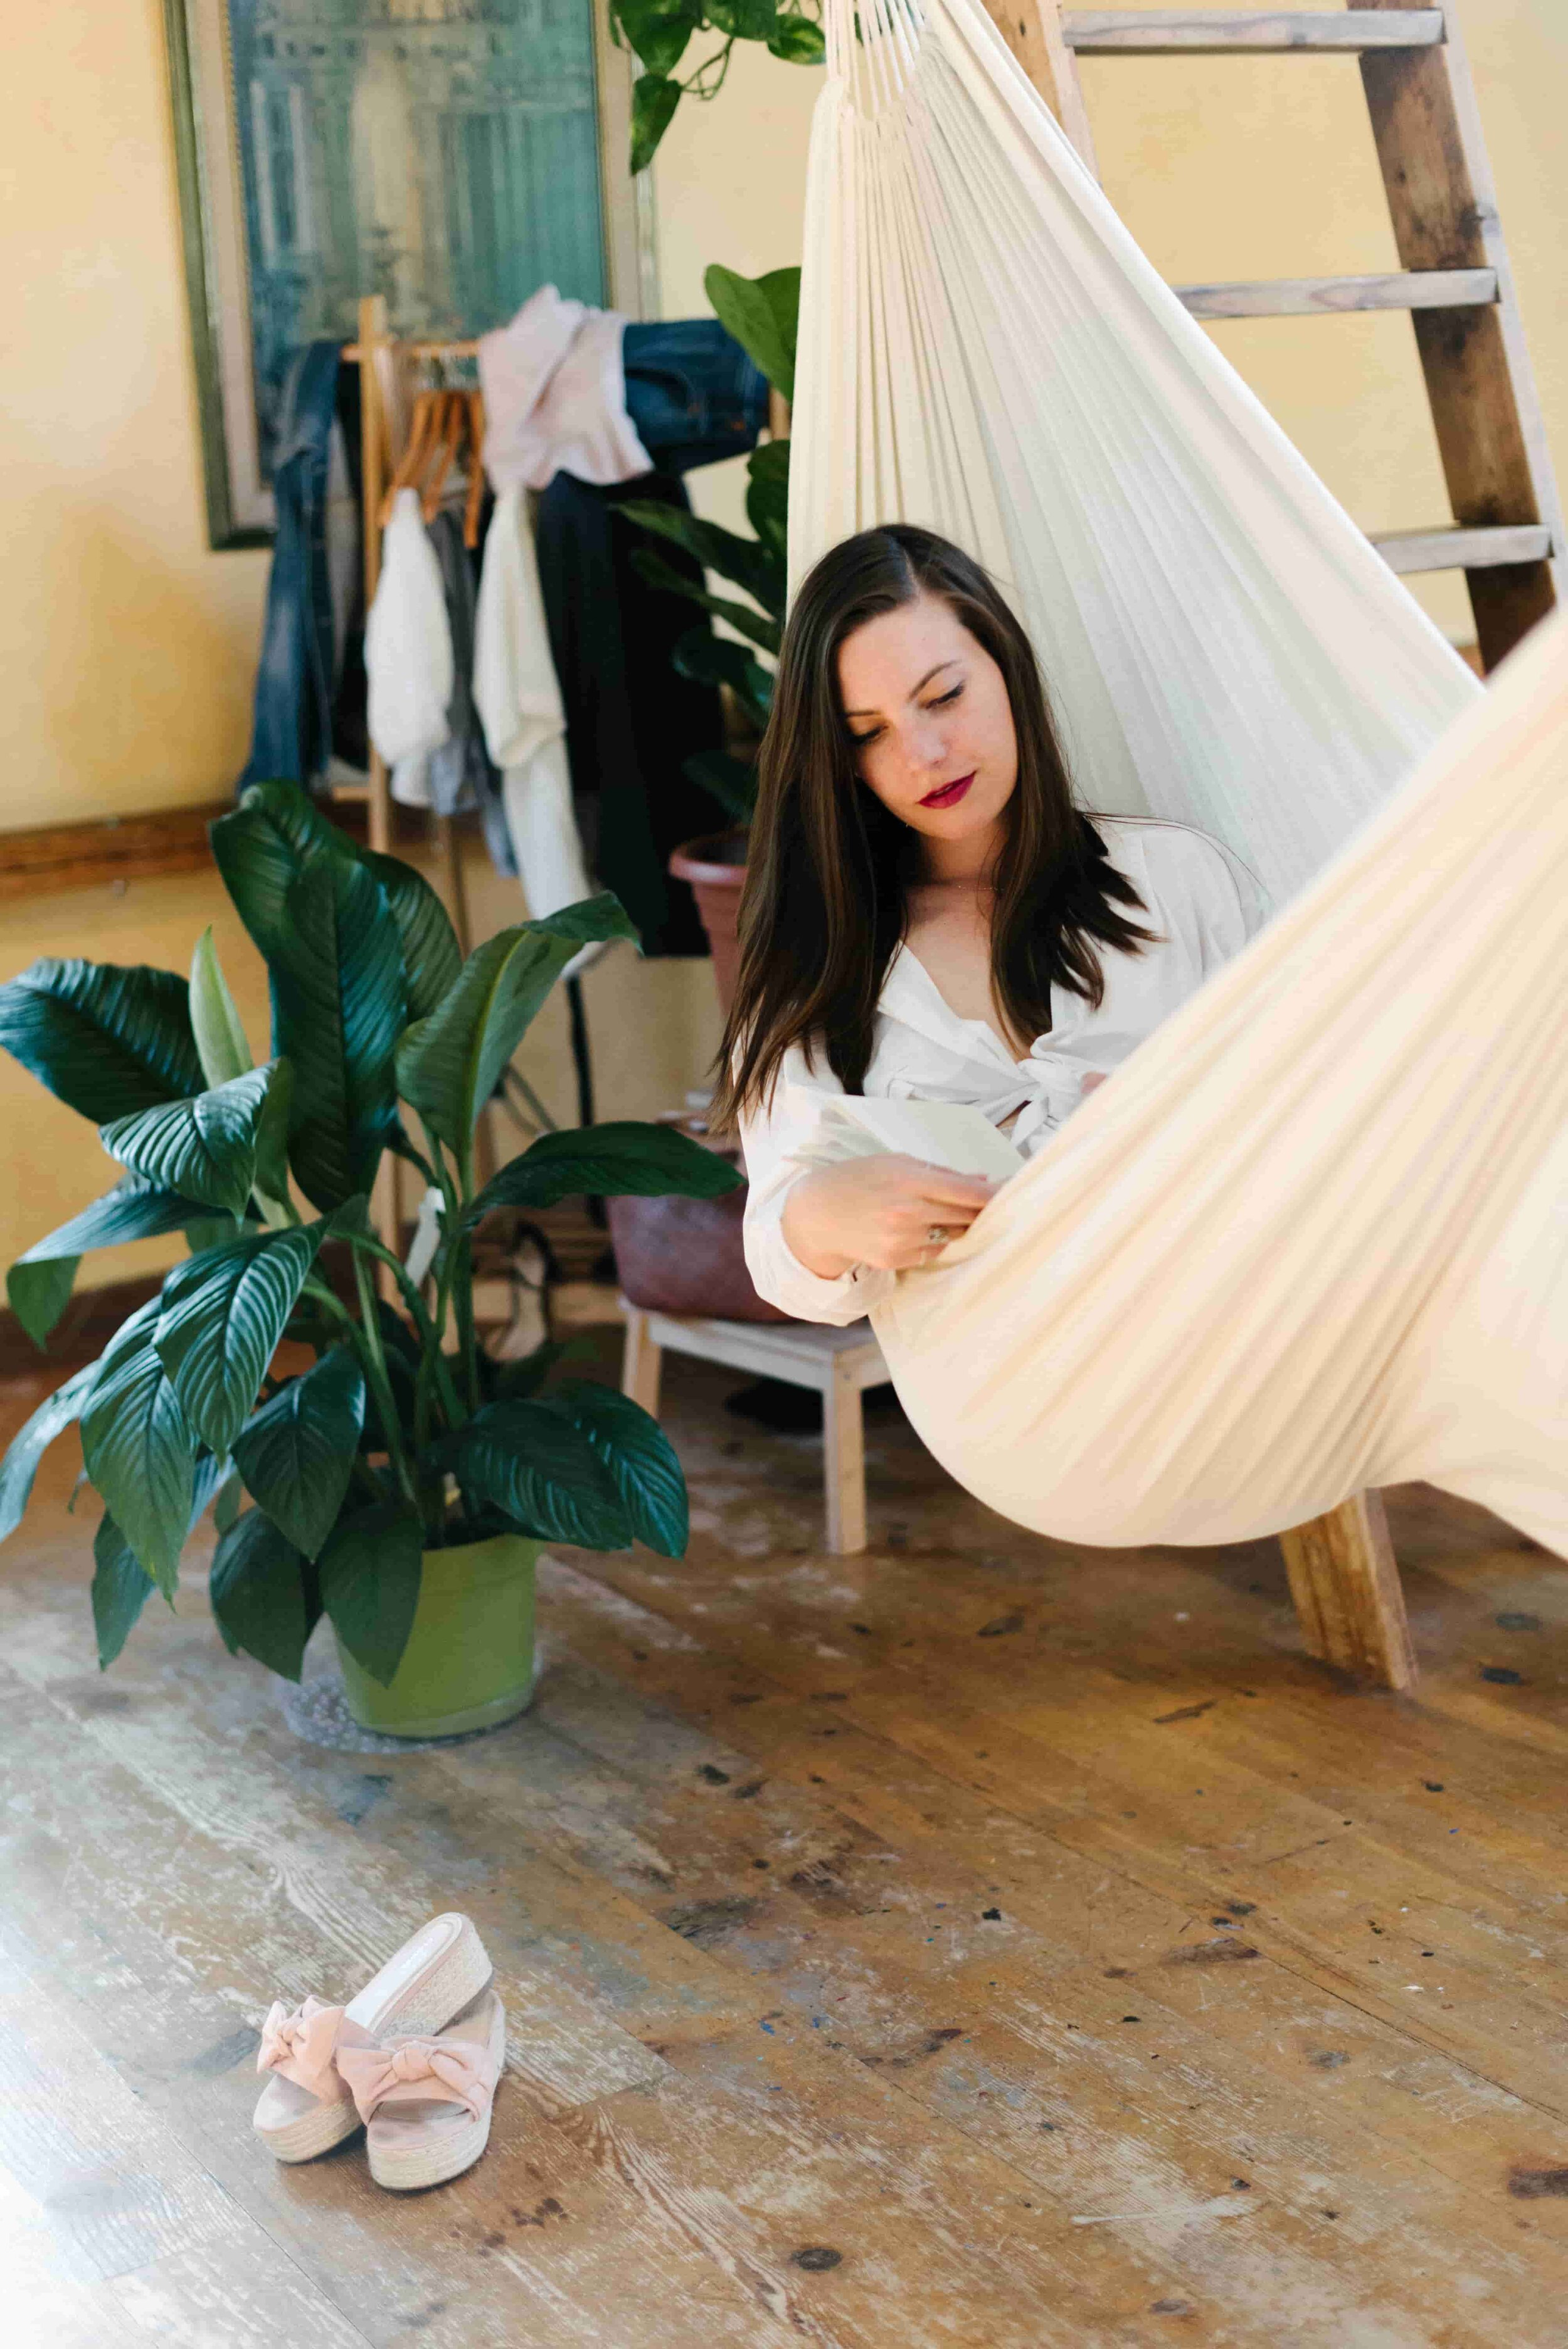 indoor hammock | Sustainable and Cheap - 15 Self-Care Ideas from www.goingzerowaste.com #zerowaste #ecofriendly #gogreen #sustainable #selfcare